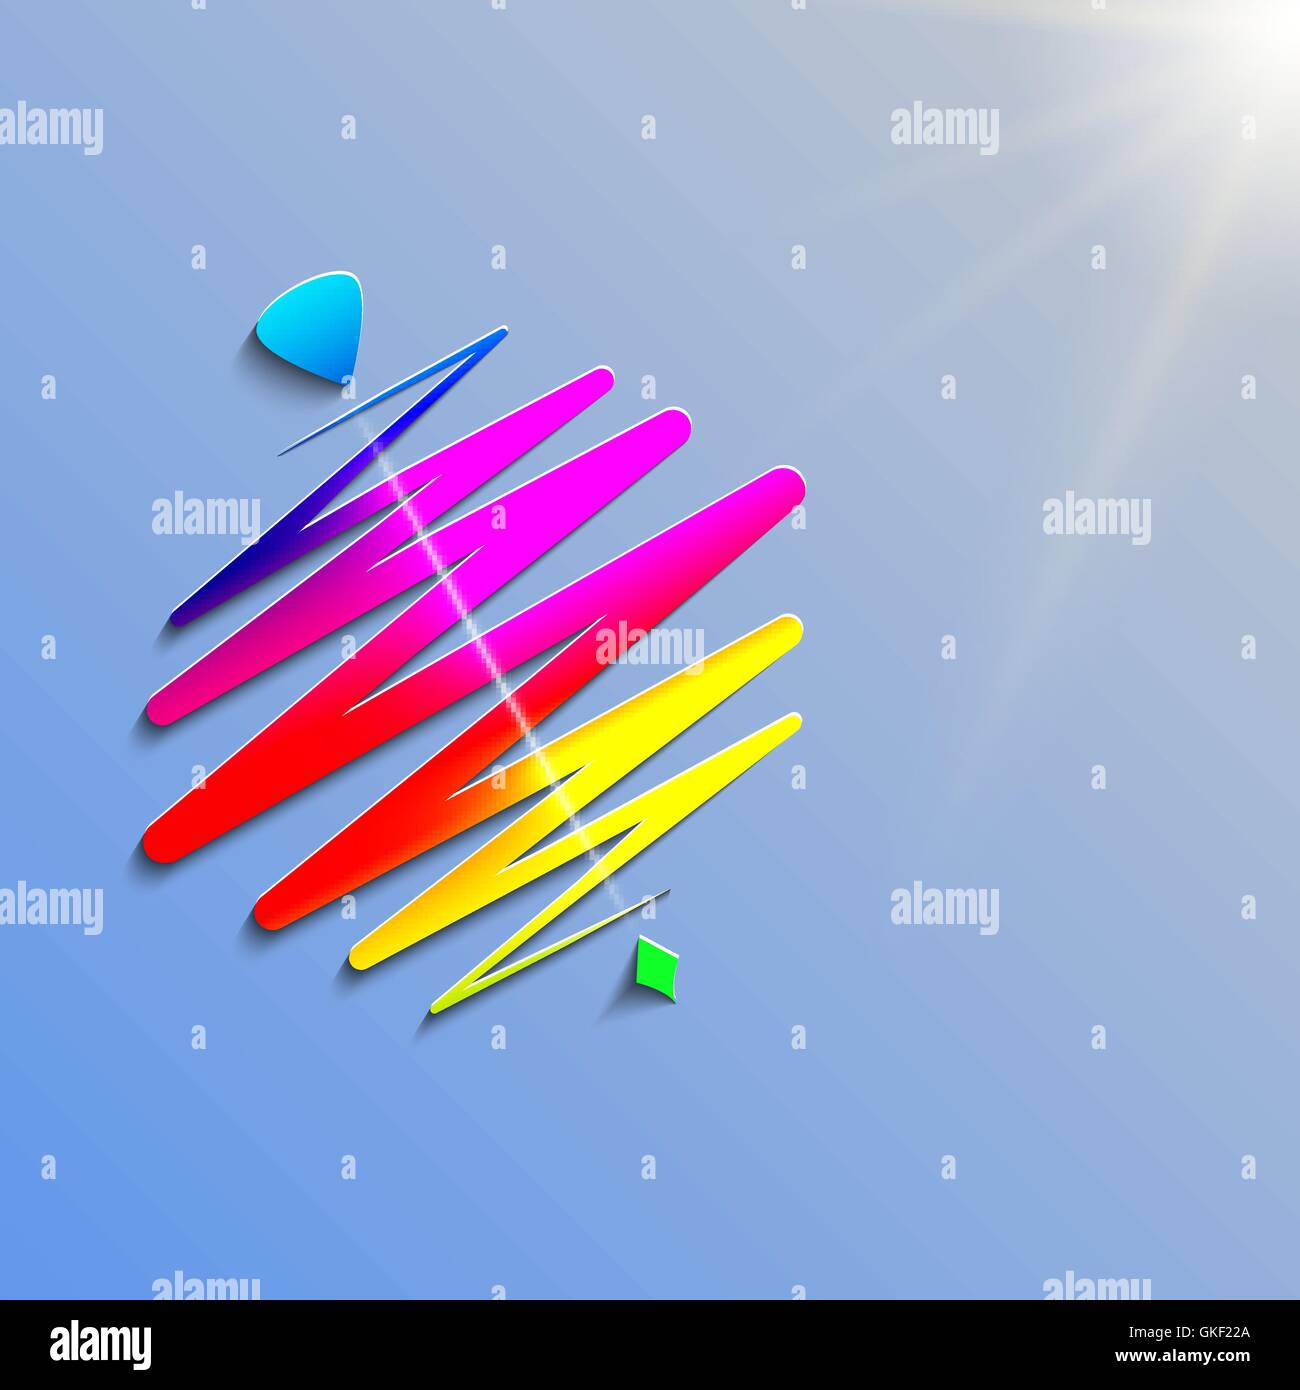 modern color whirligig, on an abstract background. Fast whirlabout. Luminous peg-top. Vector illustration. - Stock Image